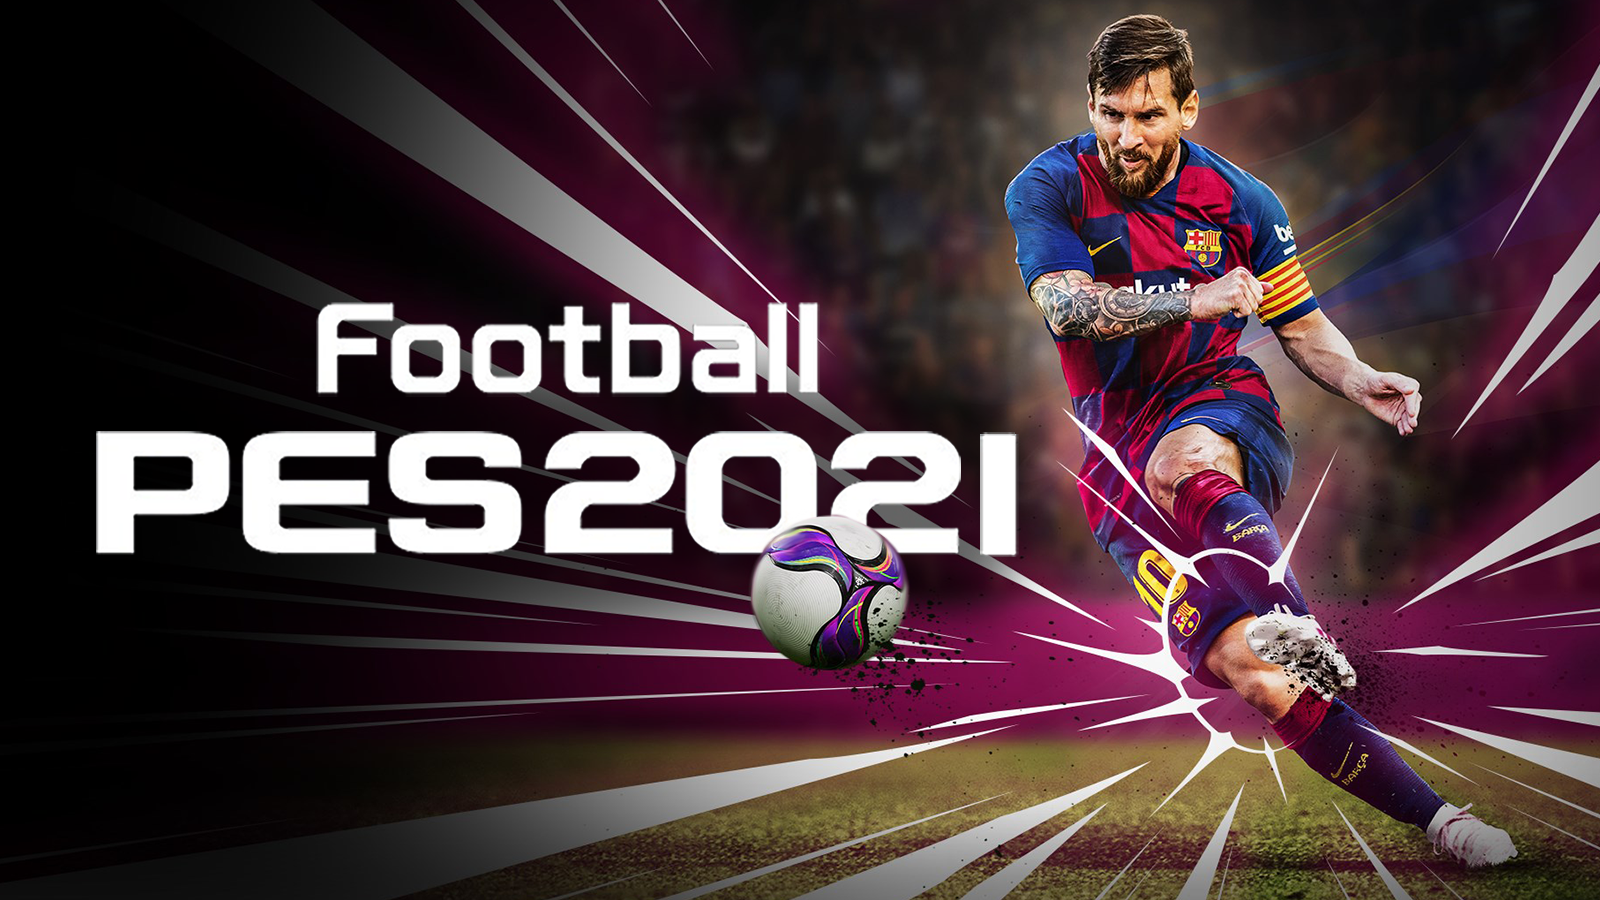 Pes 2021 Wallpapers Top Free Pes 2021 Backgrounds Wallpaperaccess